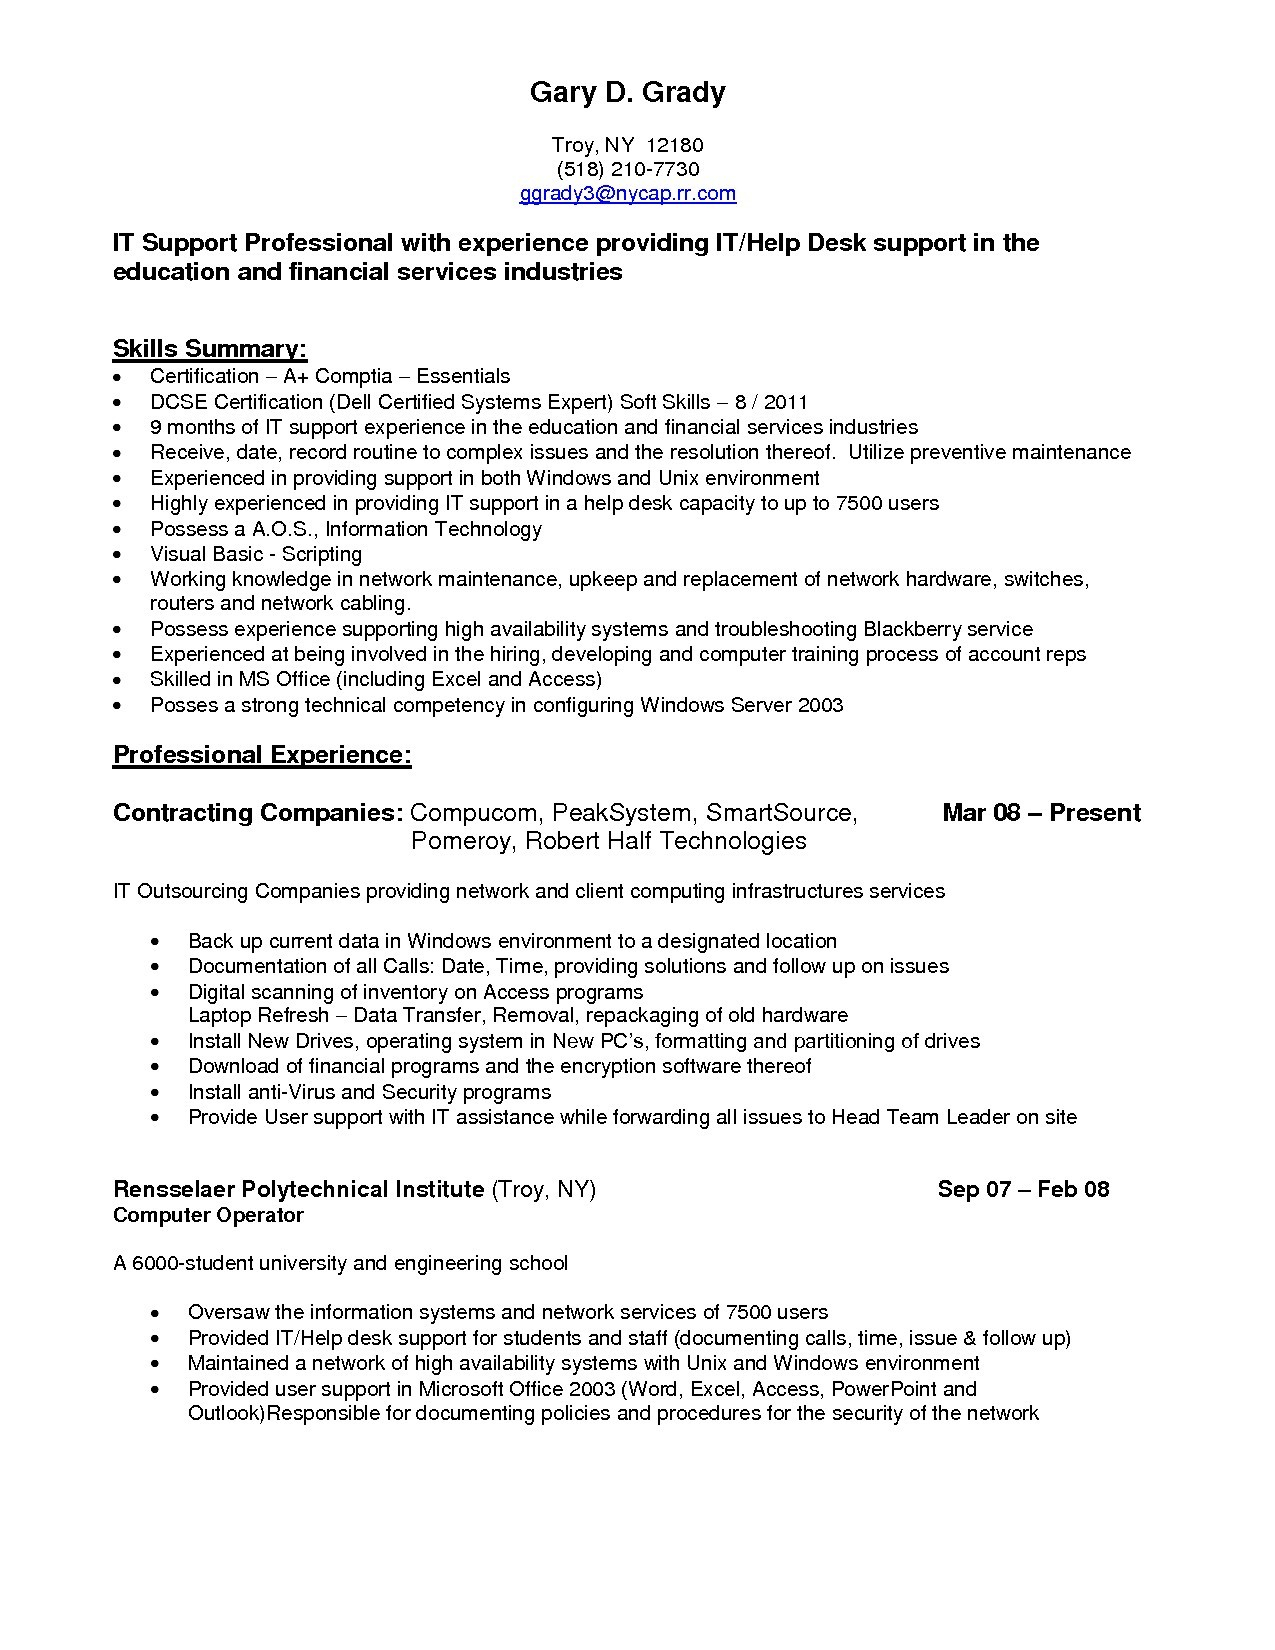 Email Letter Template - It Support Resume Lovely Awesome Sample College Application Resume